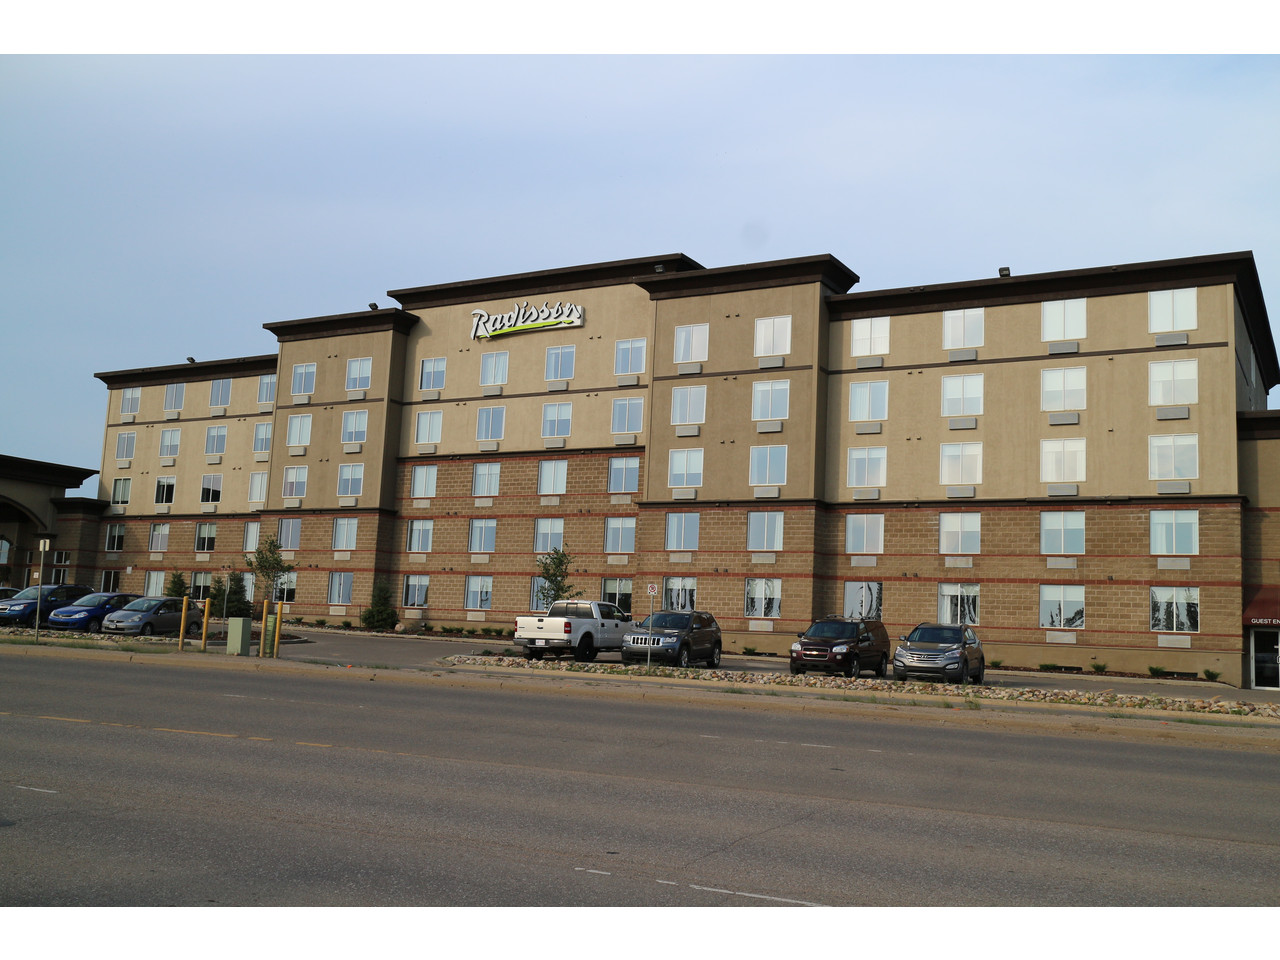 Radisson hotel and suites fort mcmurray alberta elsie hui for Radisson hotel